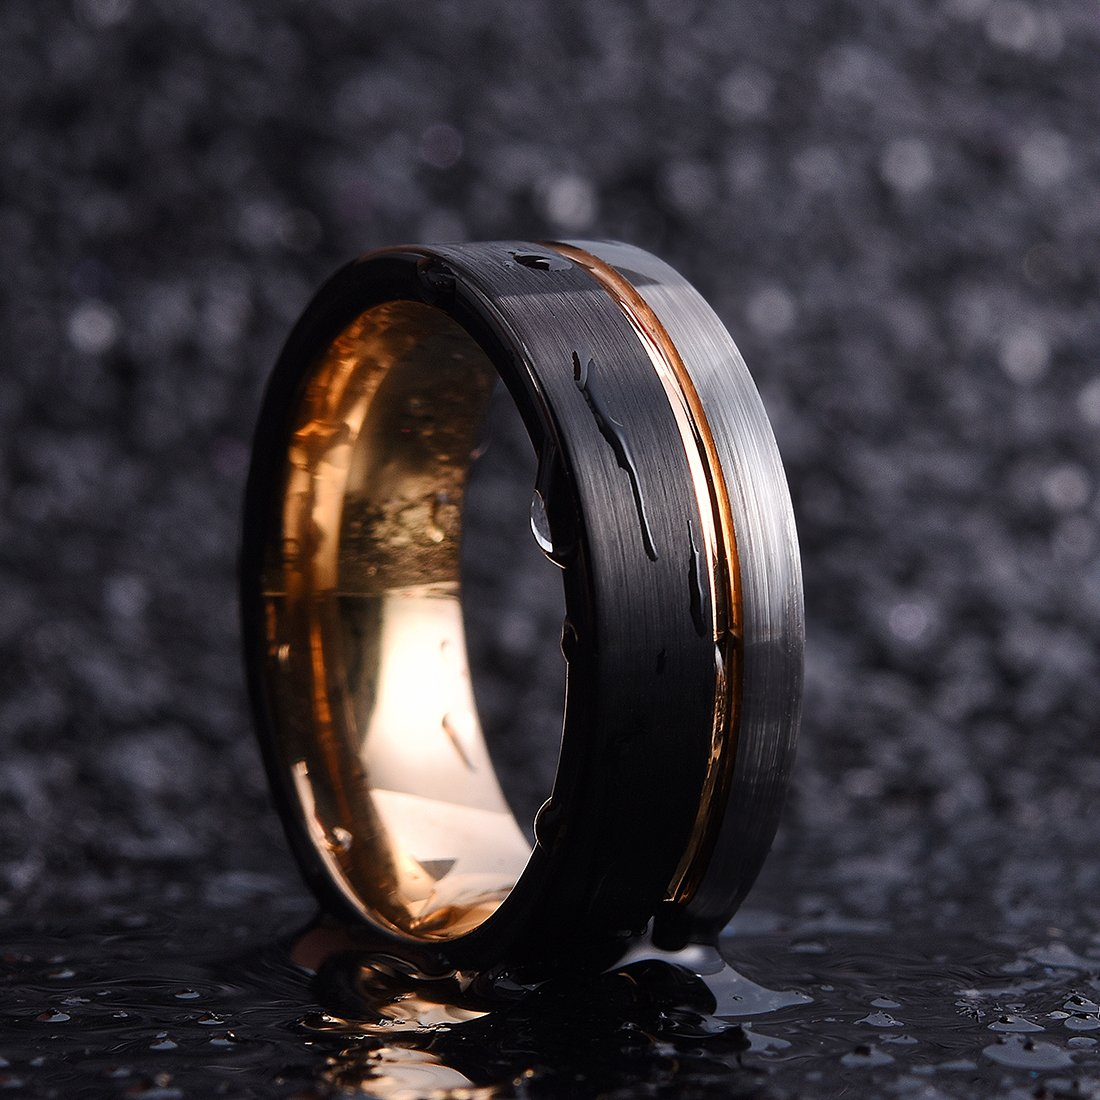 King Will Loop Tungsten Carbide Wedding Band 8mm Rose Gold Line Ring Black and Silver Brushed Comfort Fit10.5 by King Will (Image #3)